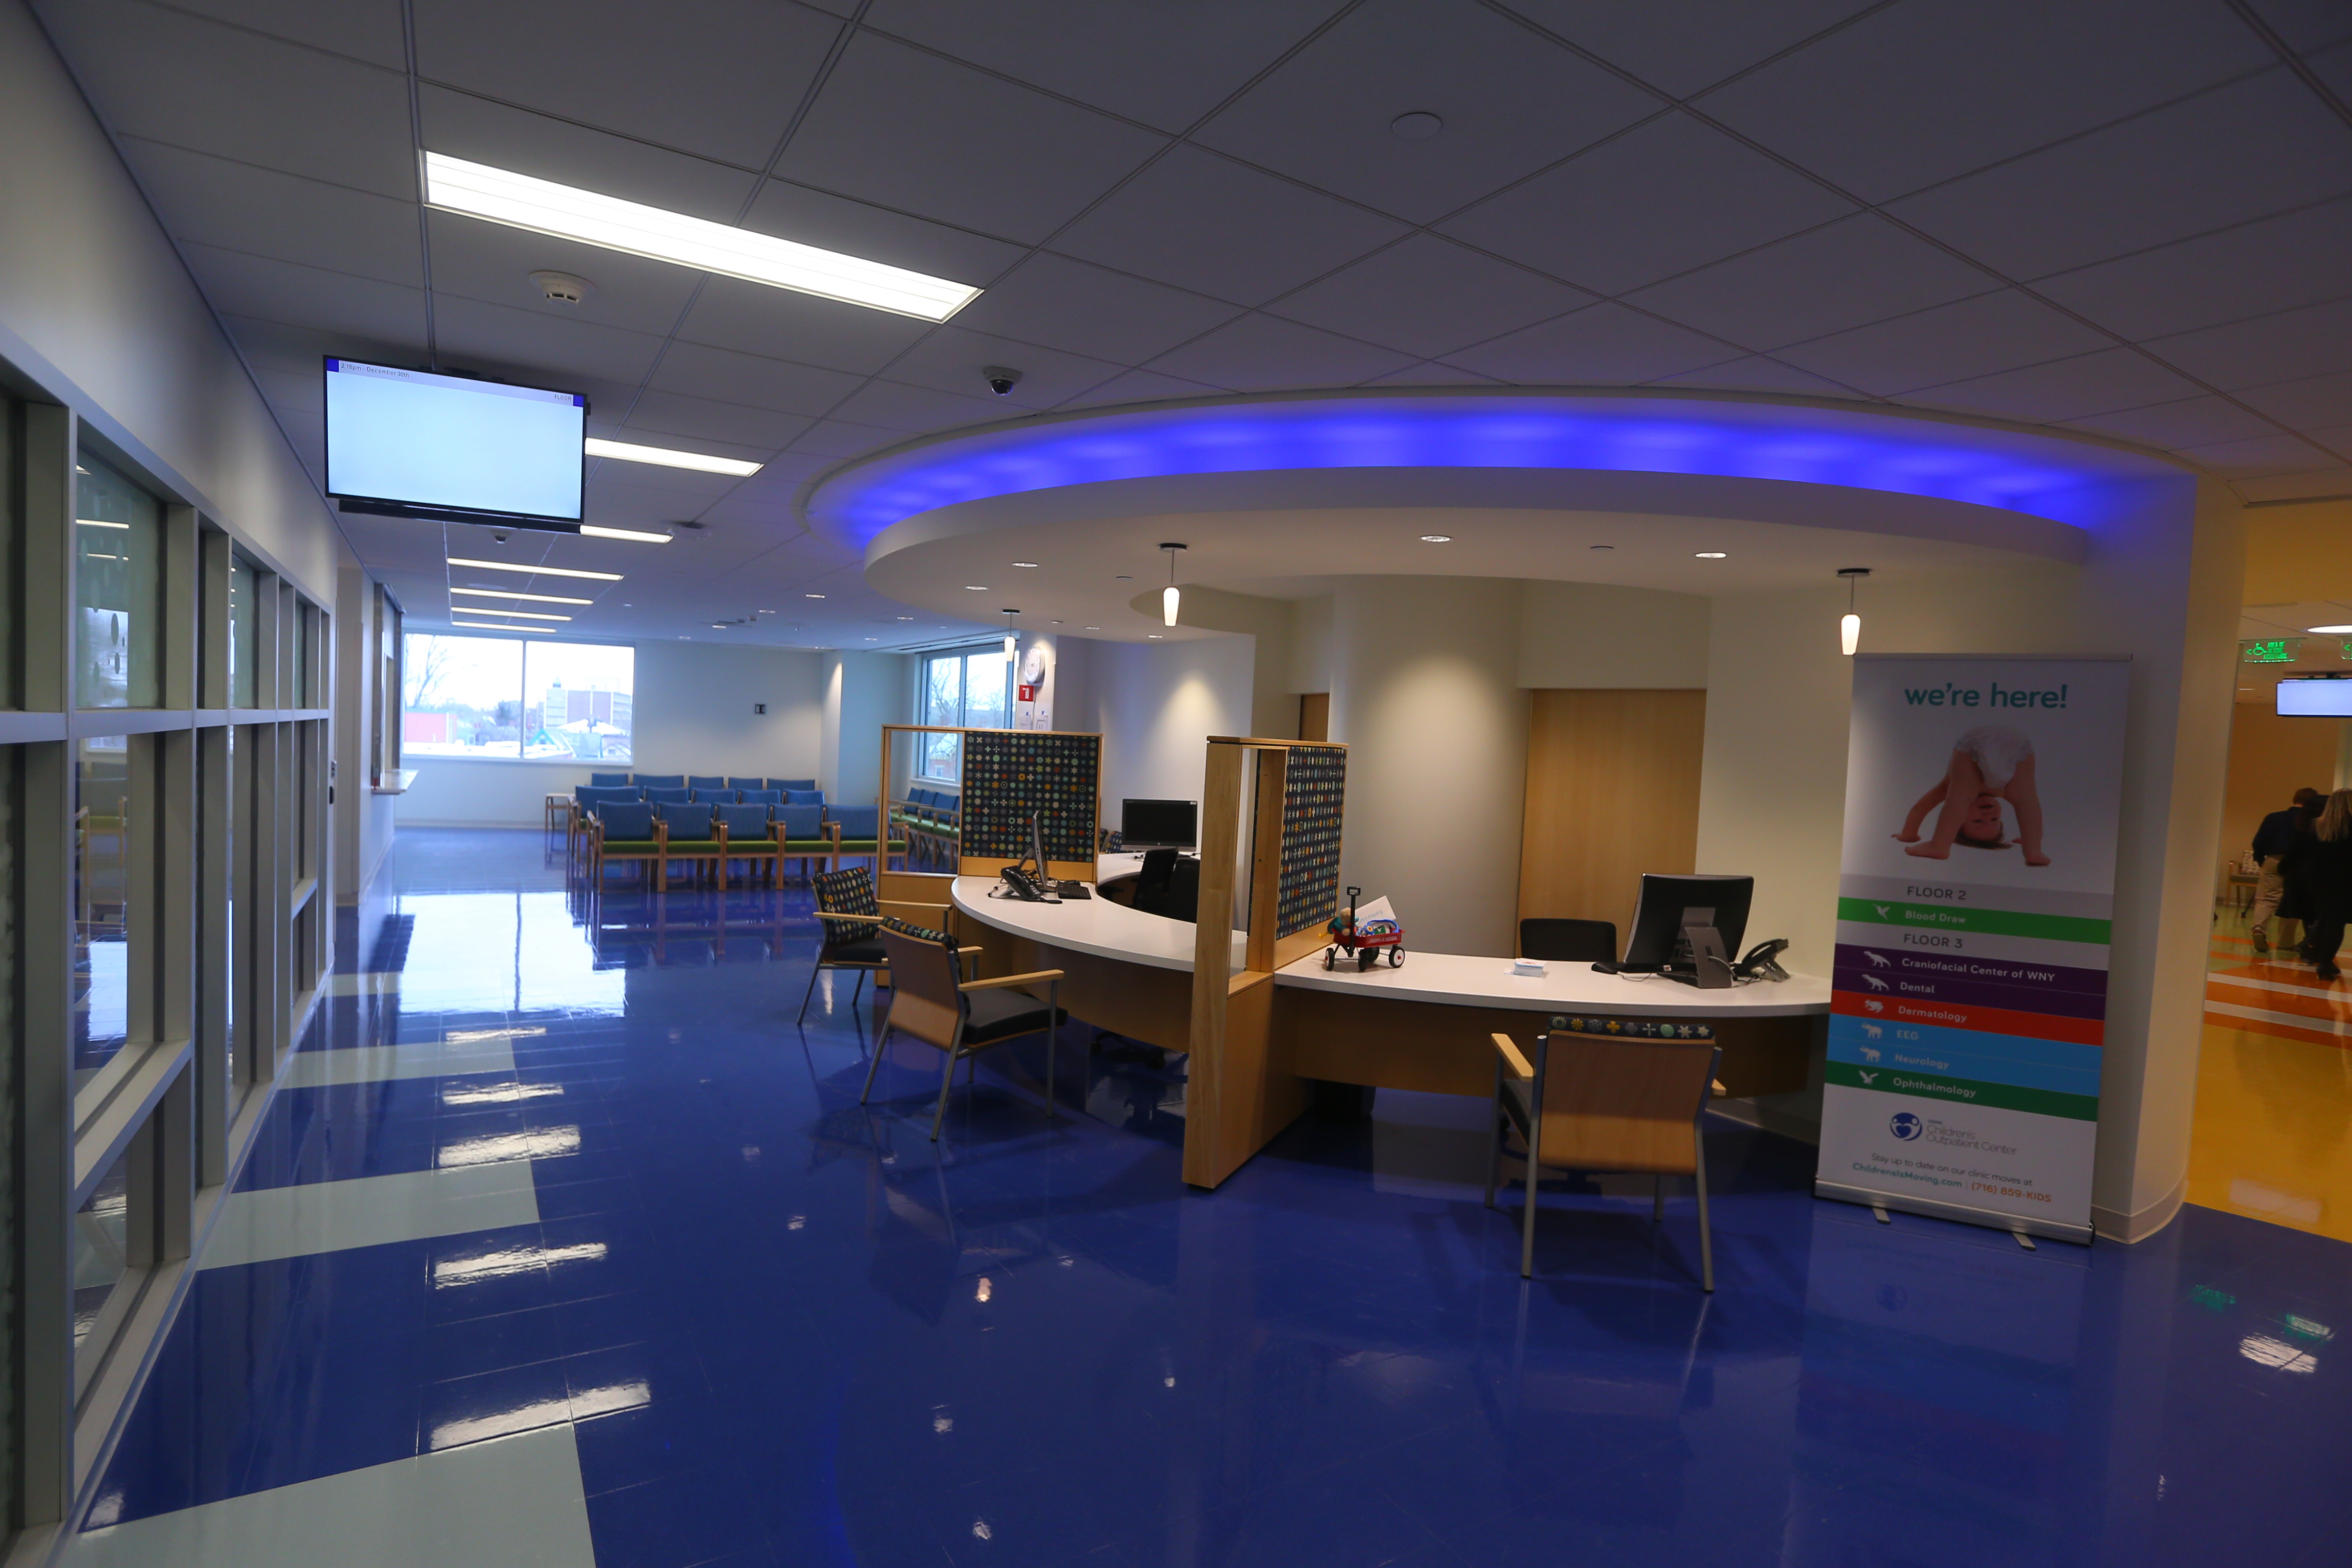 A reception area at the new Oishei Children's Outpatient Centerat the new Women & Children's Hospital of Buffalo in the Conventus Building. It's set to open Monday, Jan. 3, 2017. (John Hickey/Buffalo News)